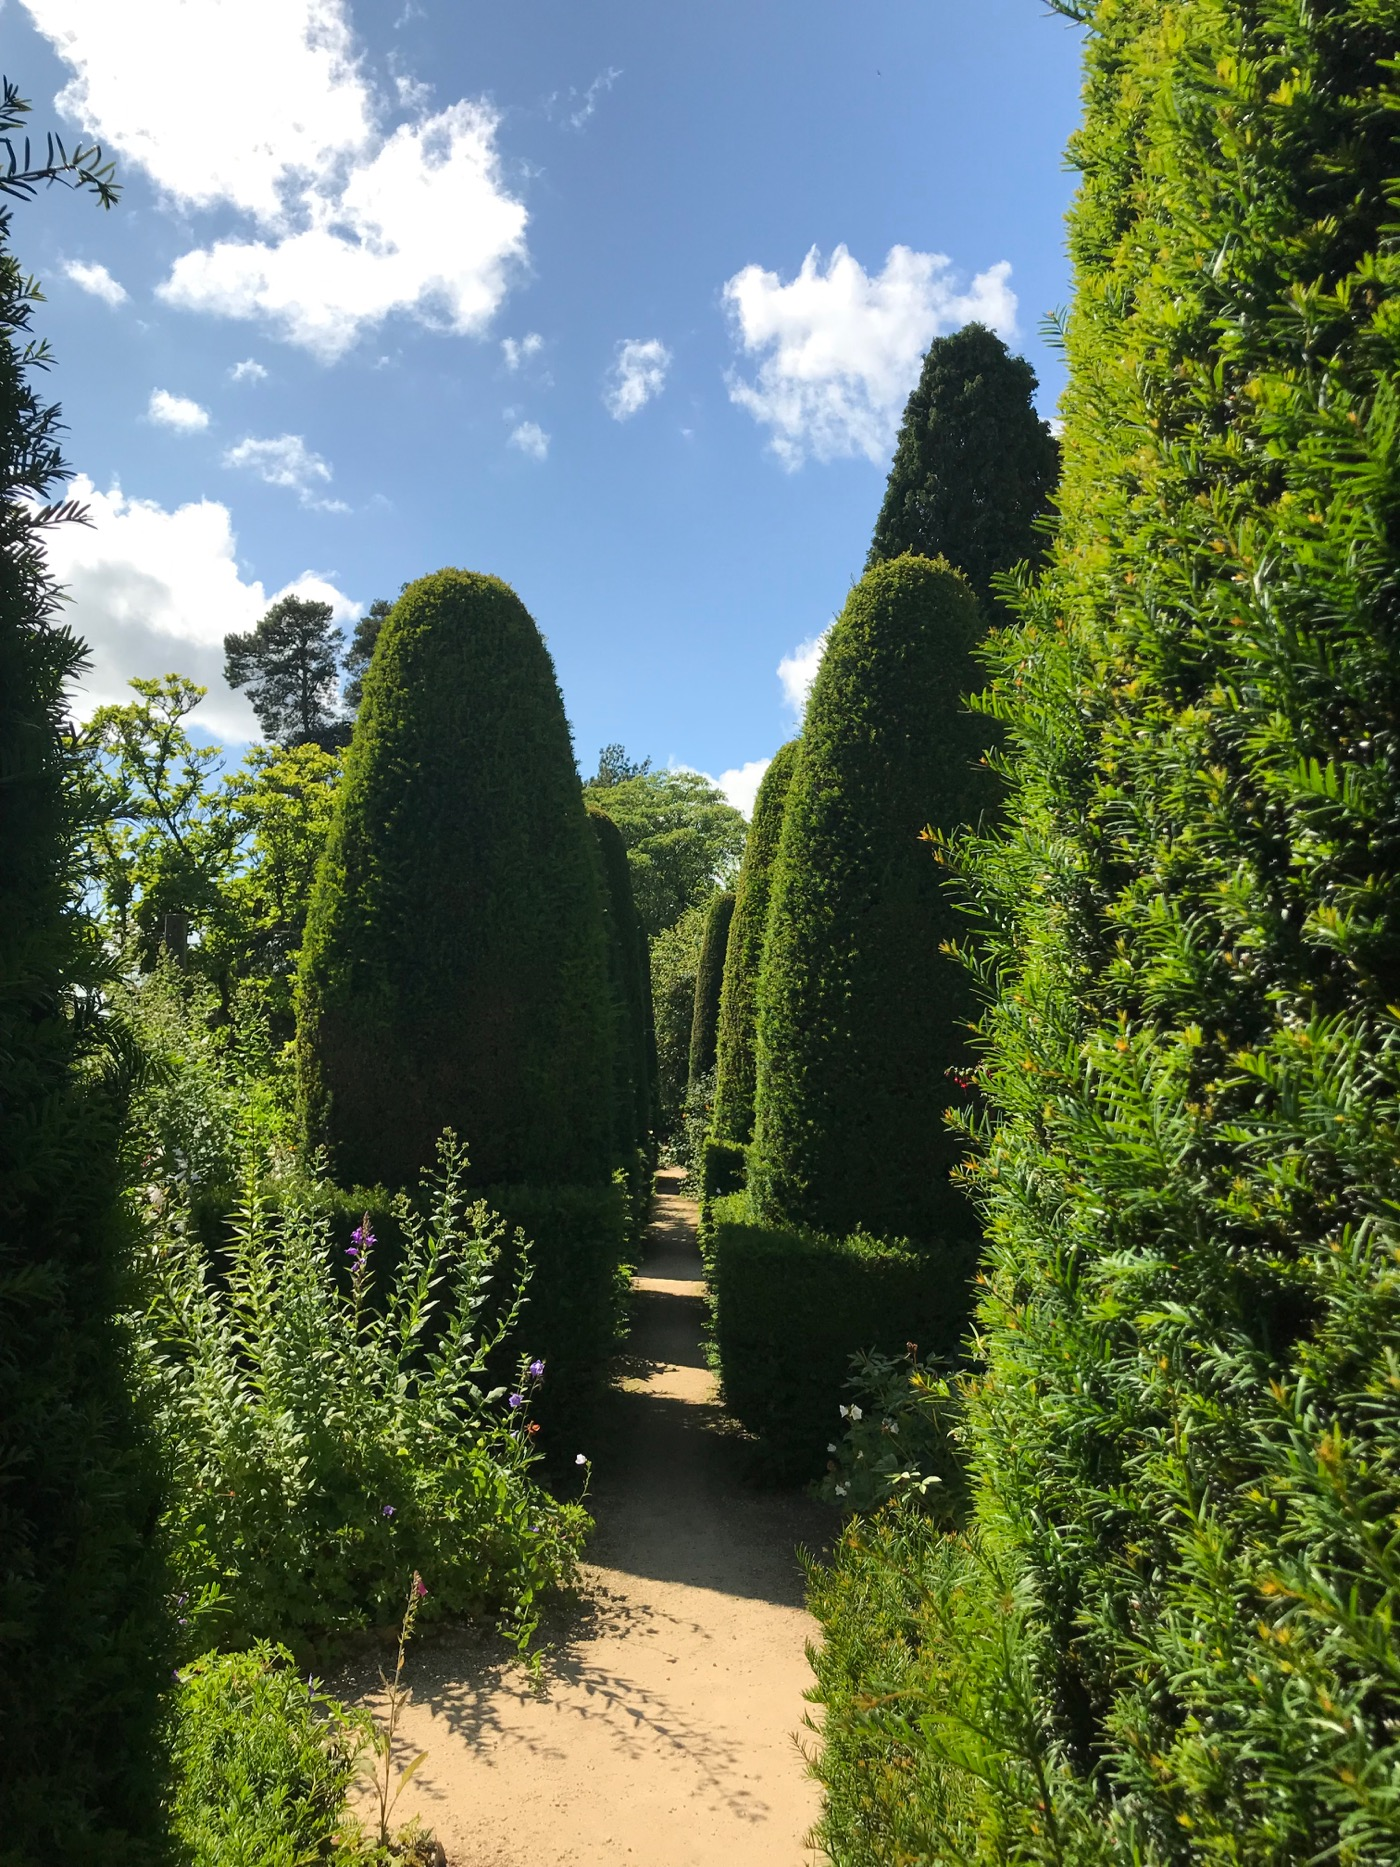 The famous Hidcote Pillar Garden. Topiary Yew trees and hedges. Cottage Garden ideas.